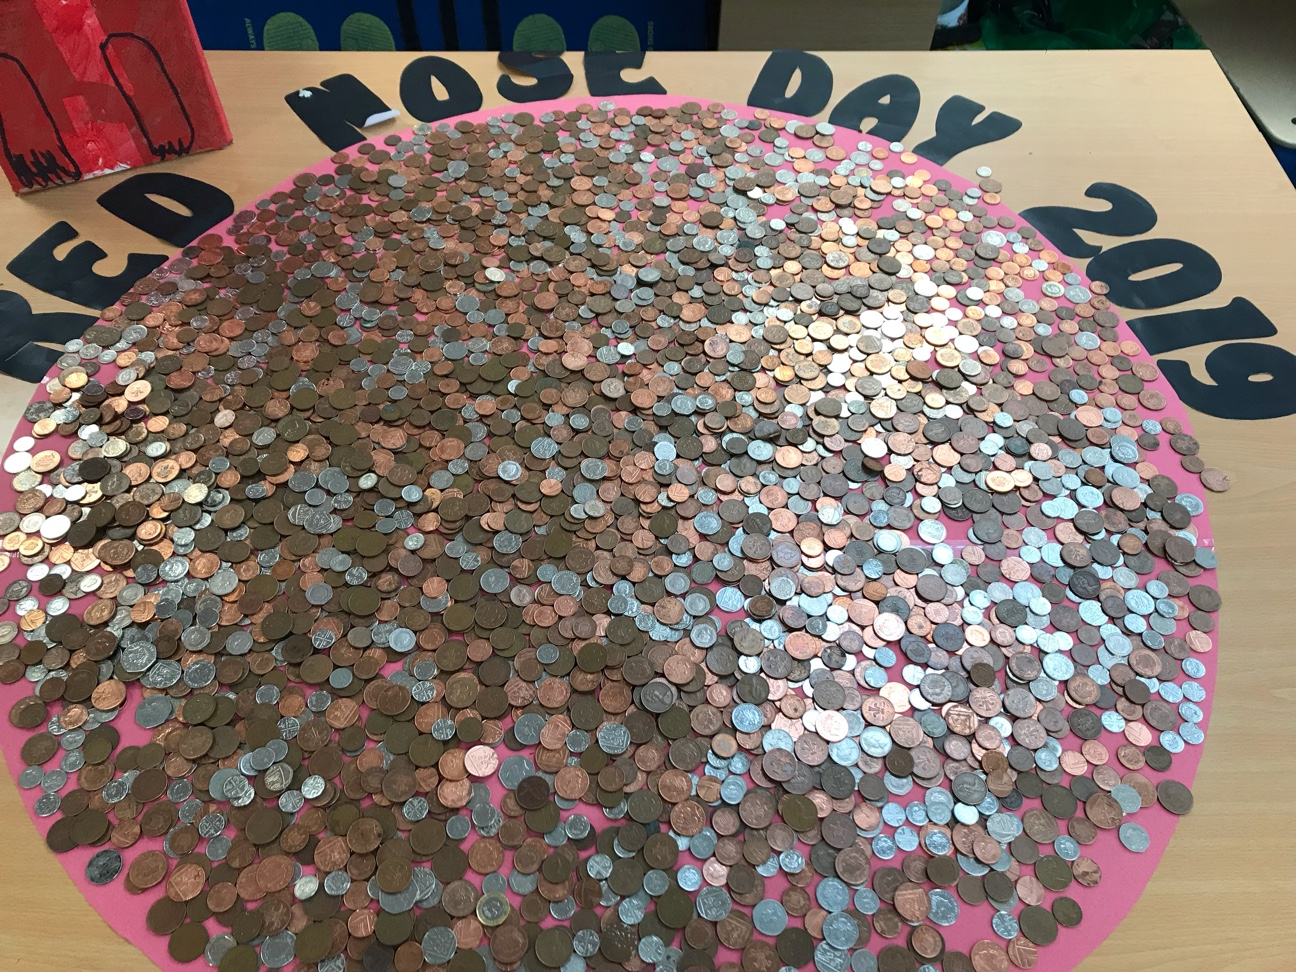 Red Nose Day! Counting the Money!